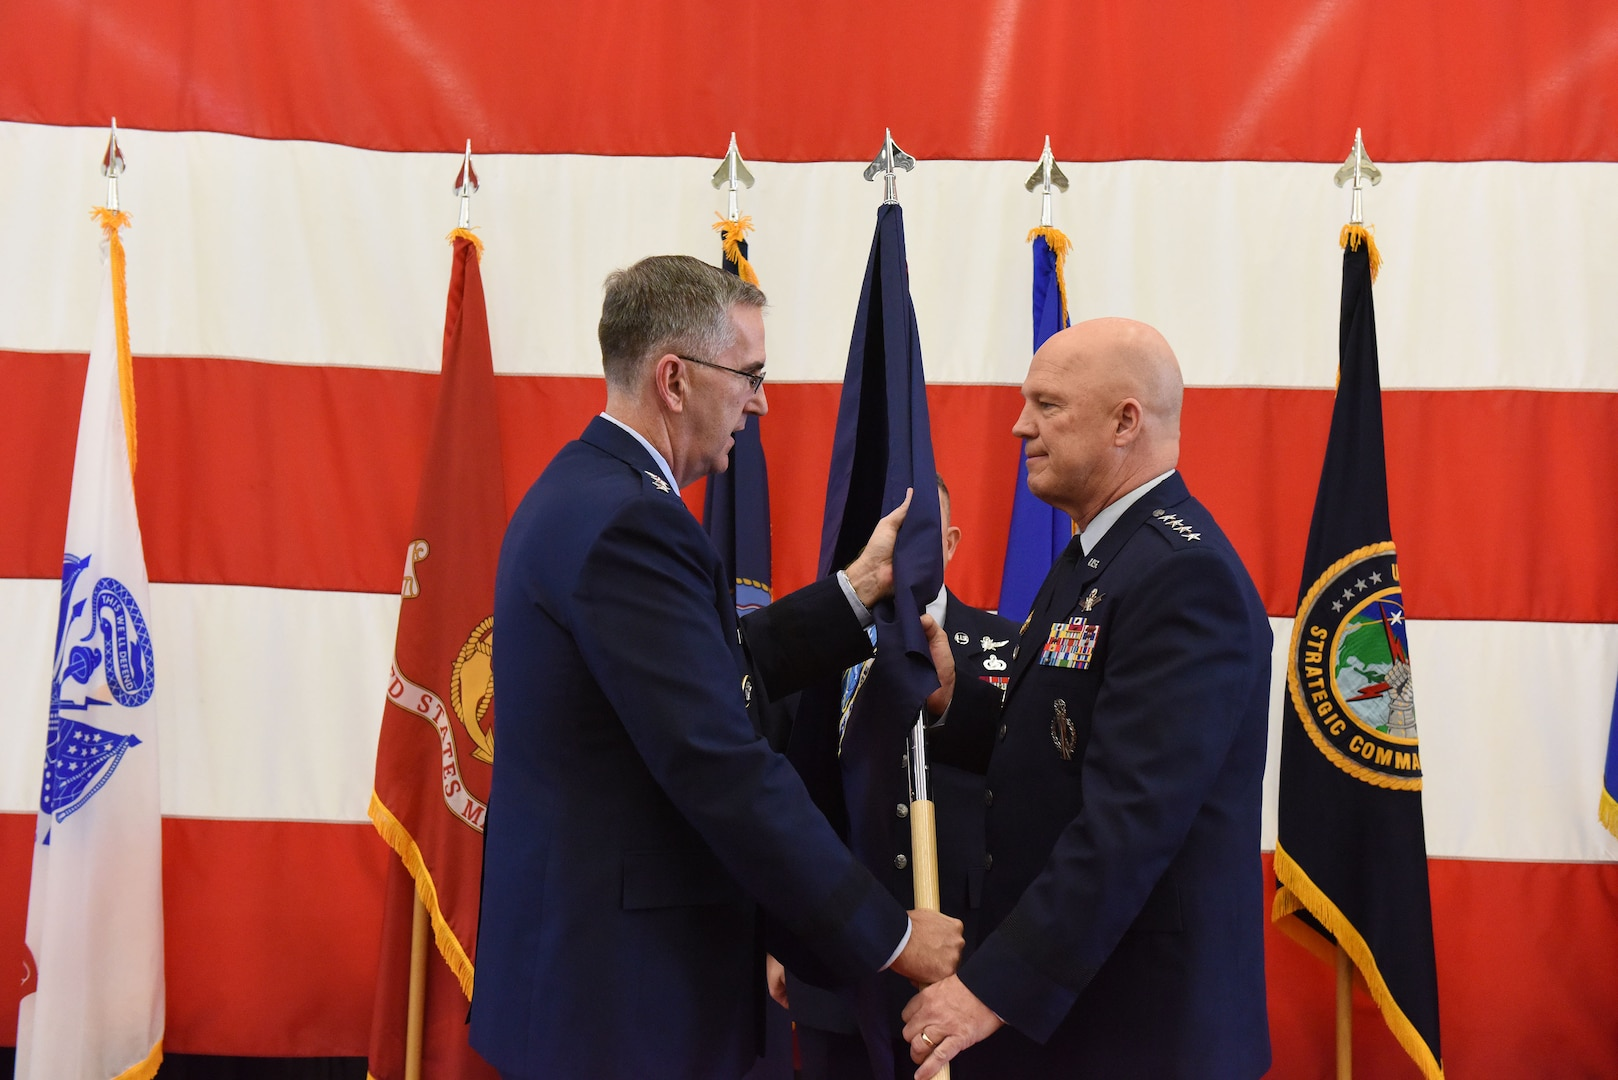 Air Force Gen. Jay Raymond, commander of Air Force Space Command, became the Joint Force Space Component Commander, taking operational responsibility for employment of all joint space forces.